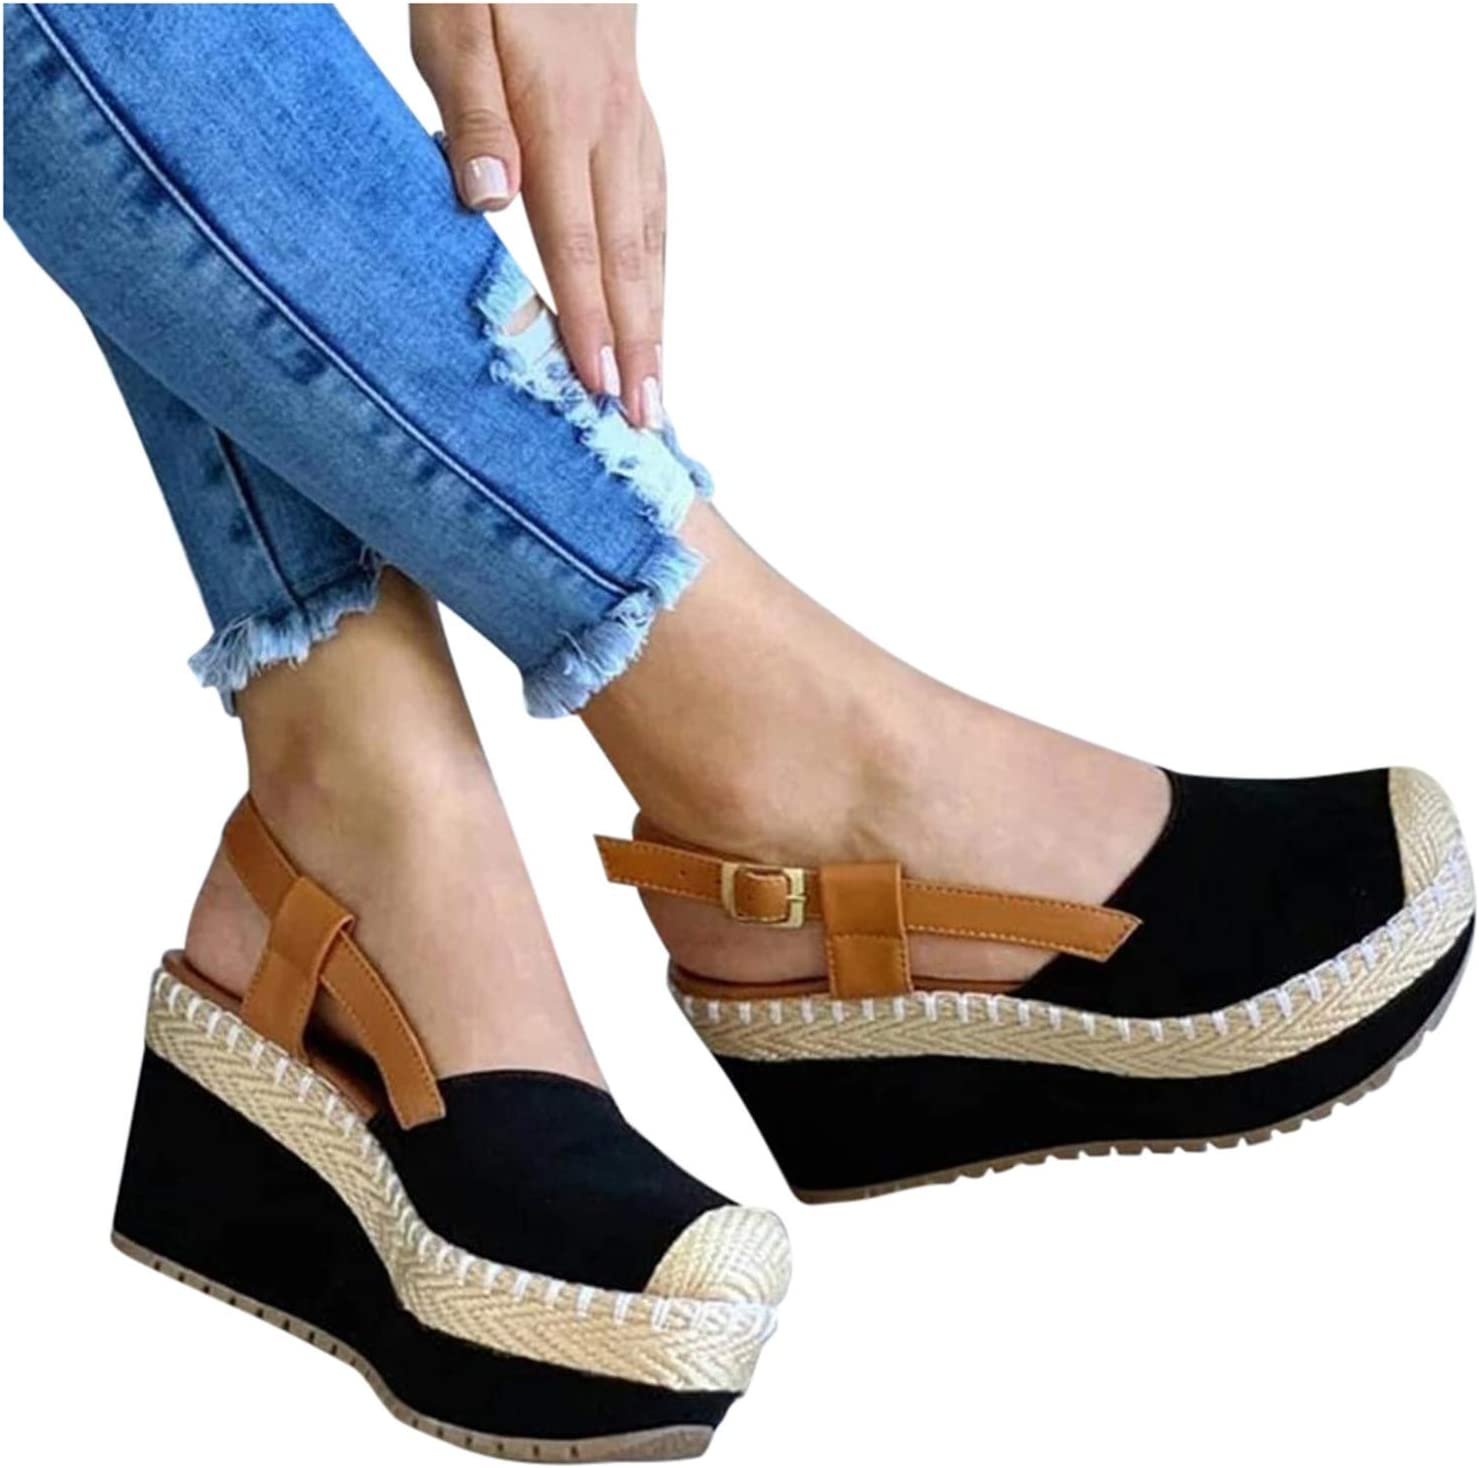 KHIIen Womens Espadrilles Wedge Sandals Buckle Strap Closed Charlotte Mall Toe specialty shop